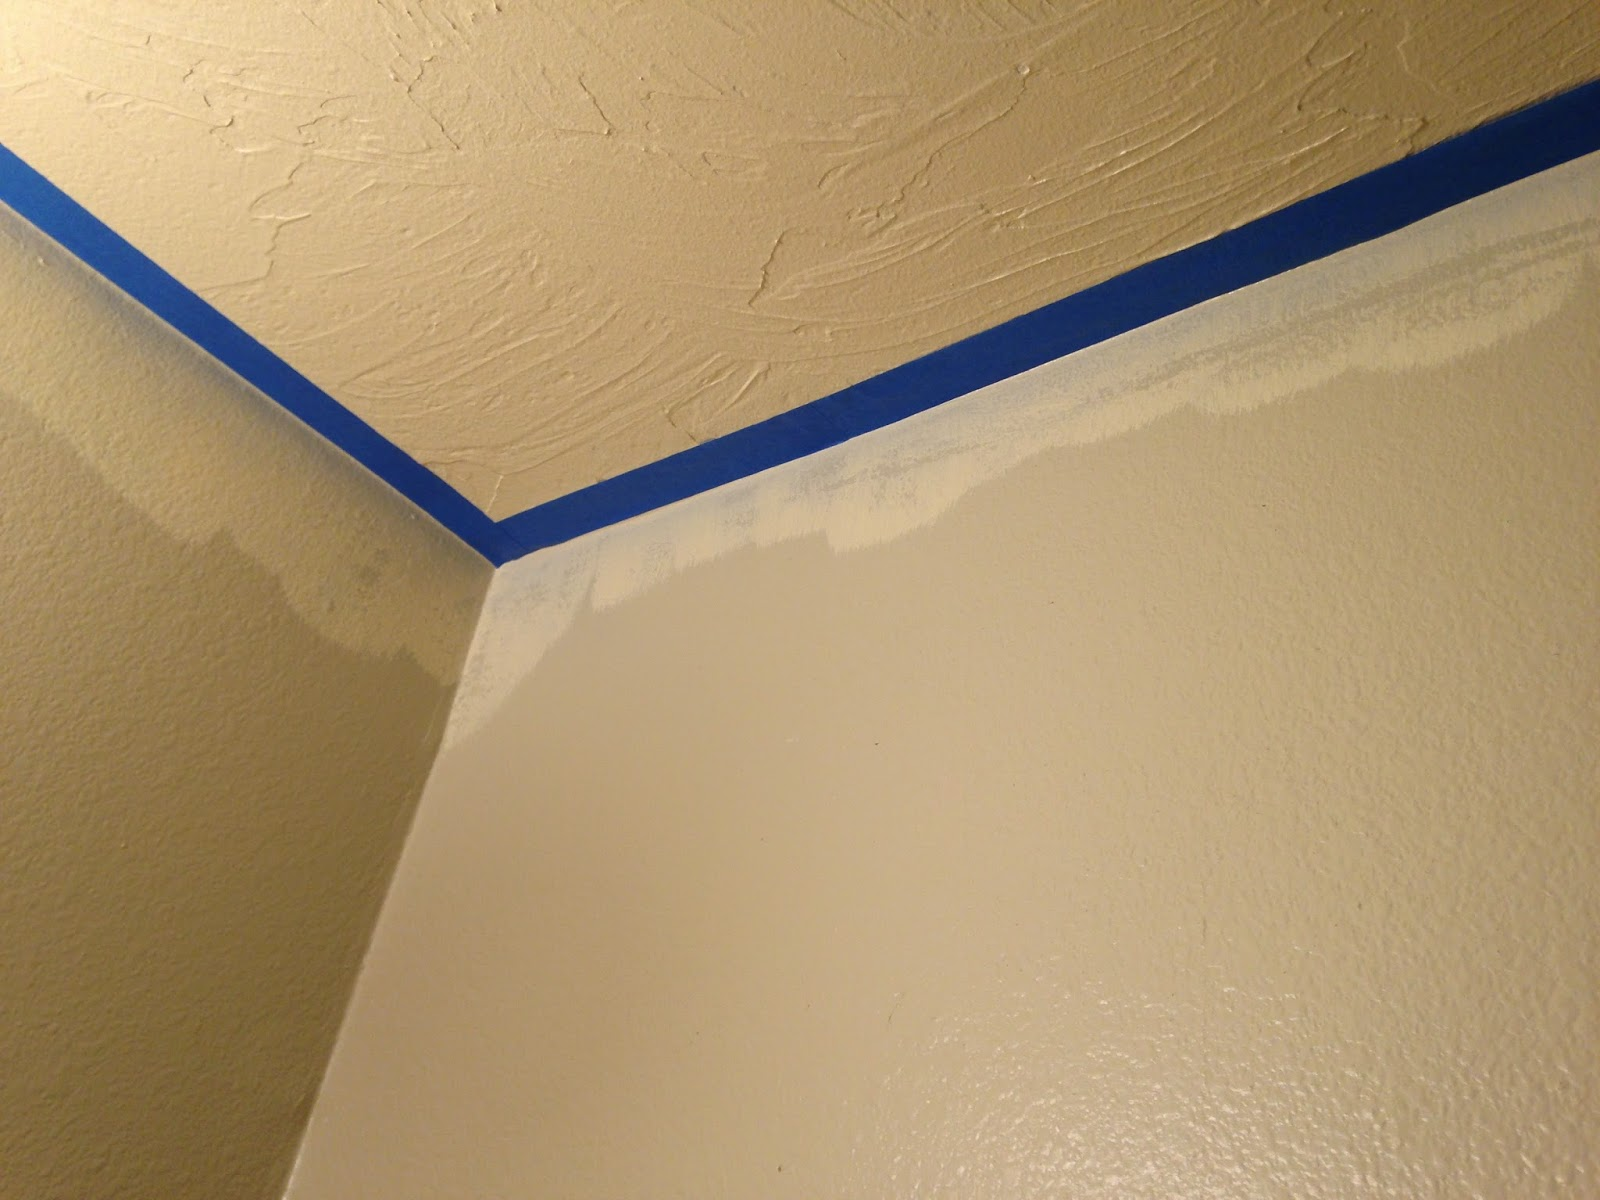 Tape Ceiling Before Painting Walls | www.Gradschoolfairs.com